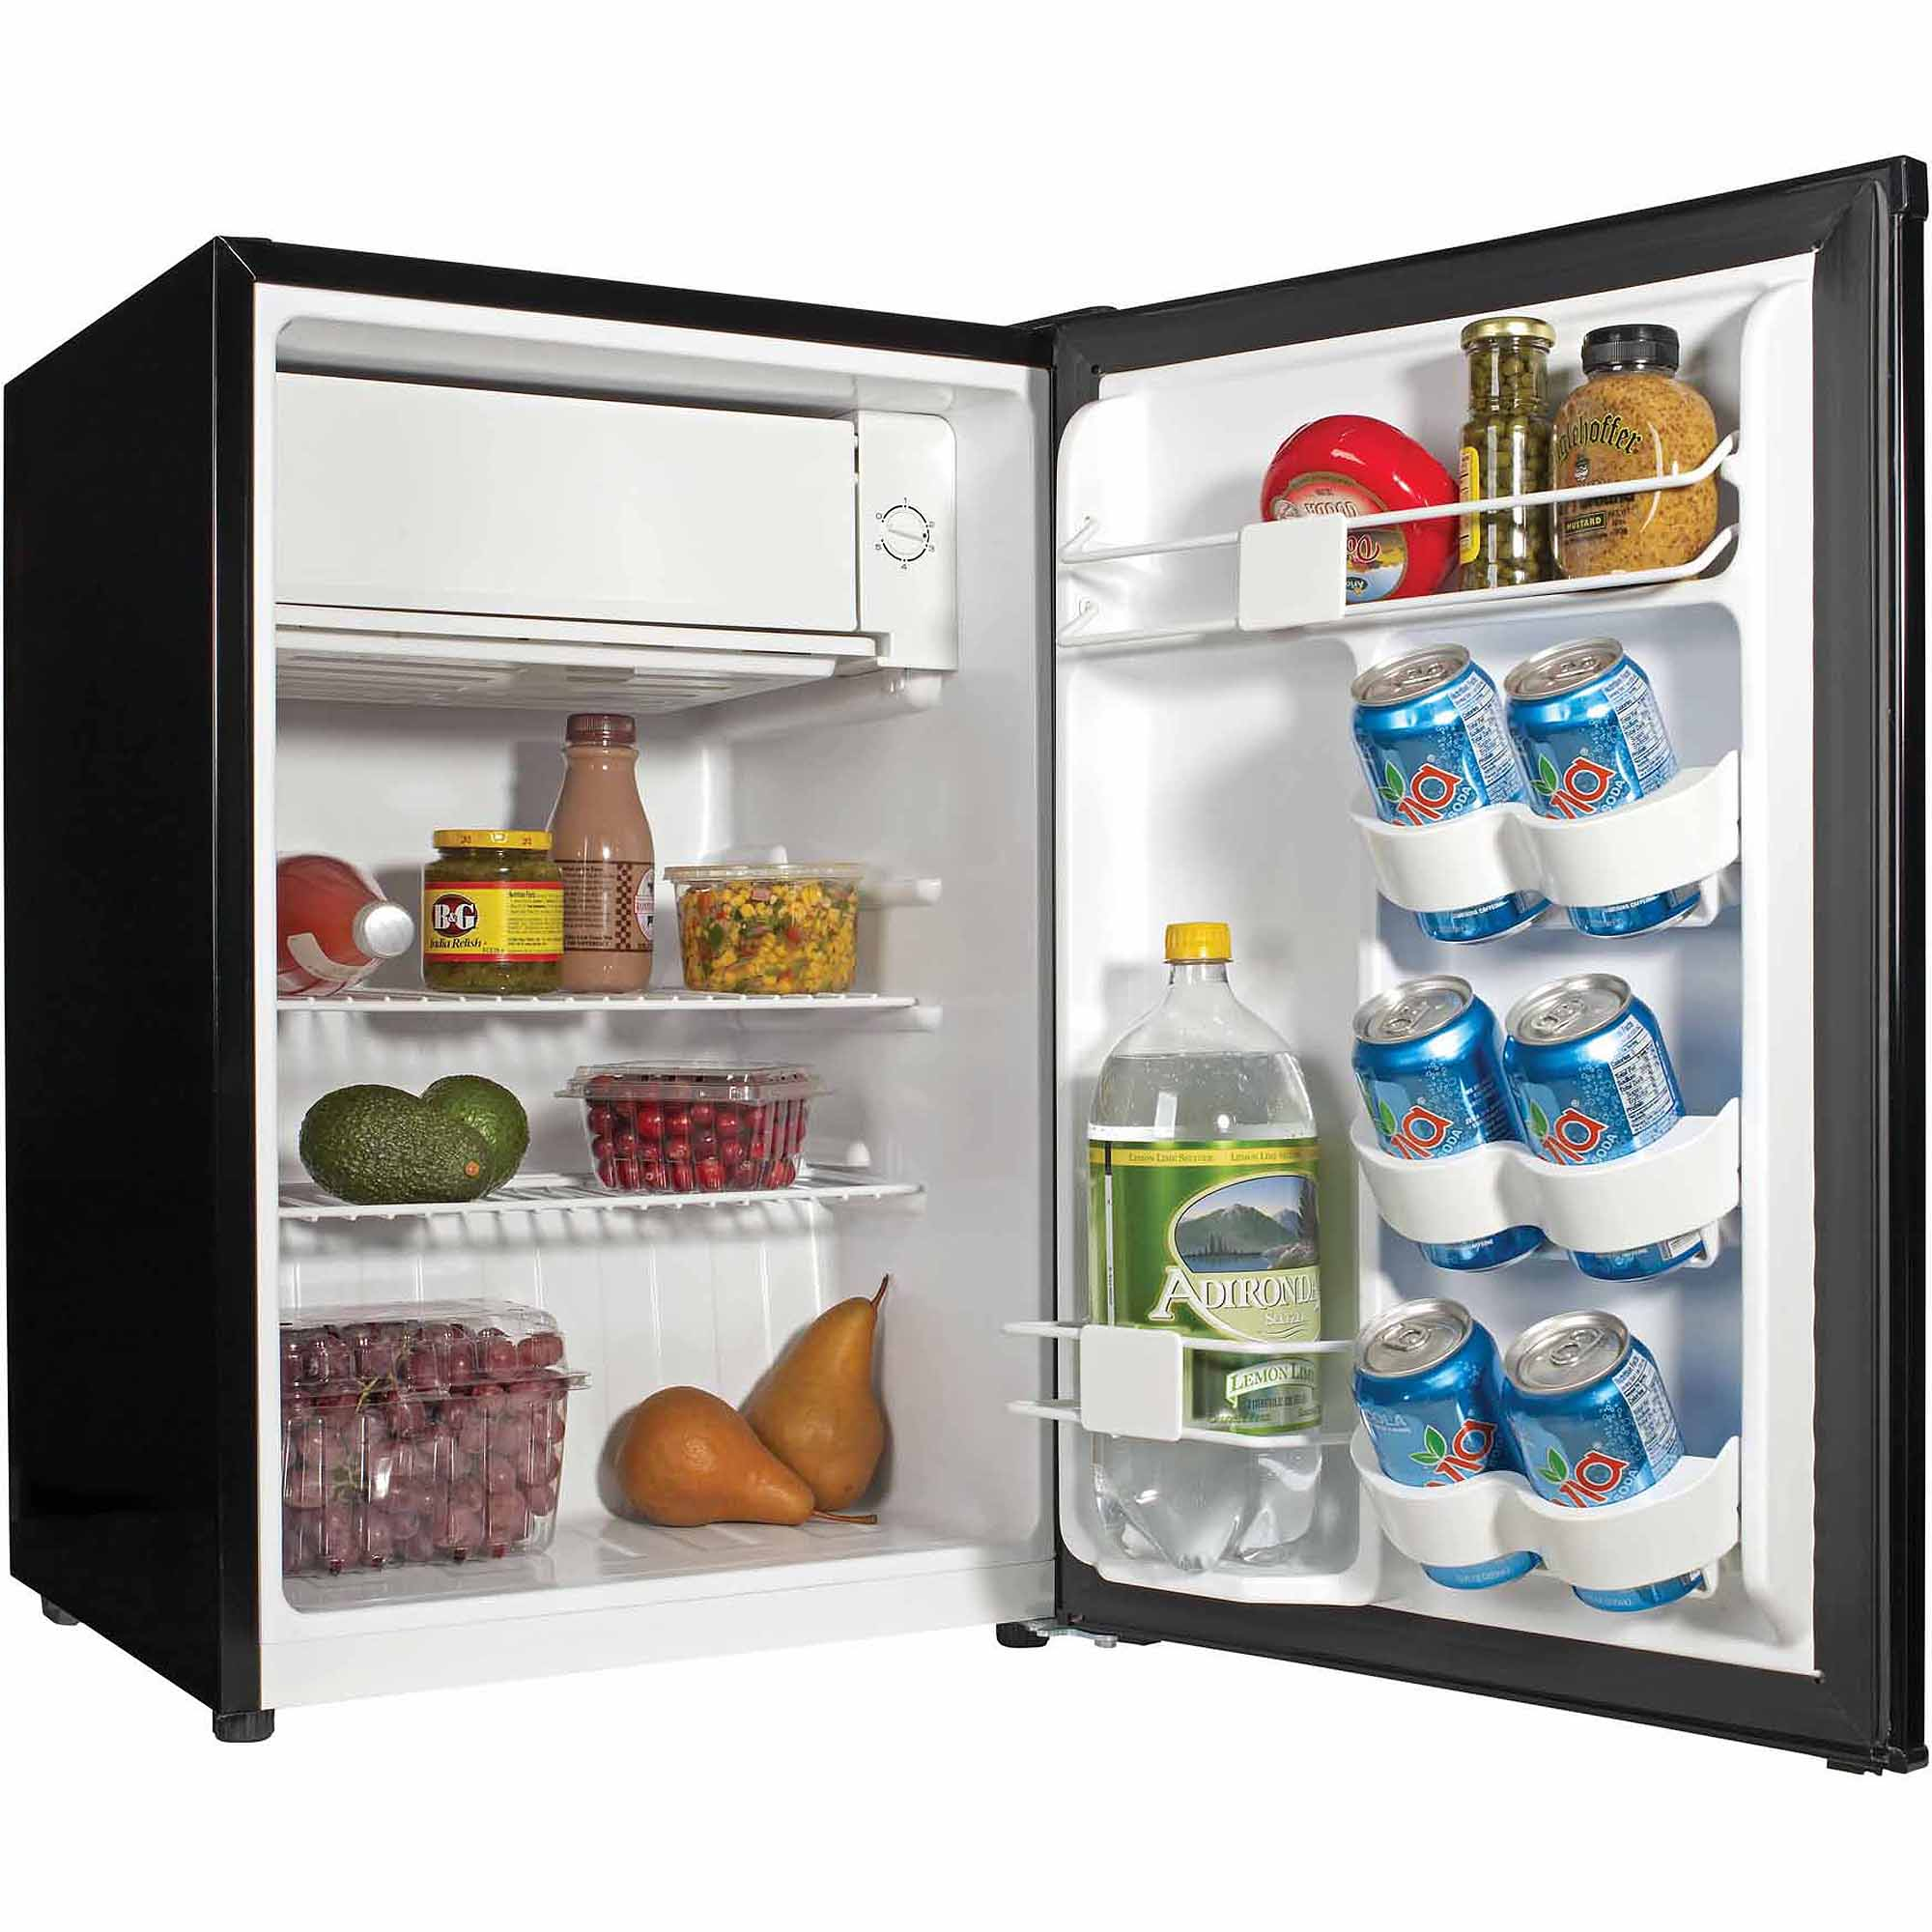 Fridge For A Dorm Room